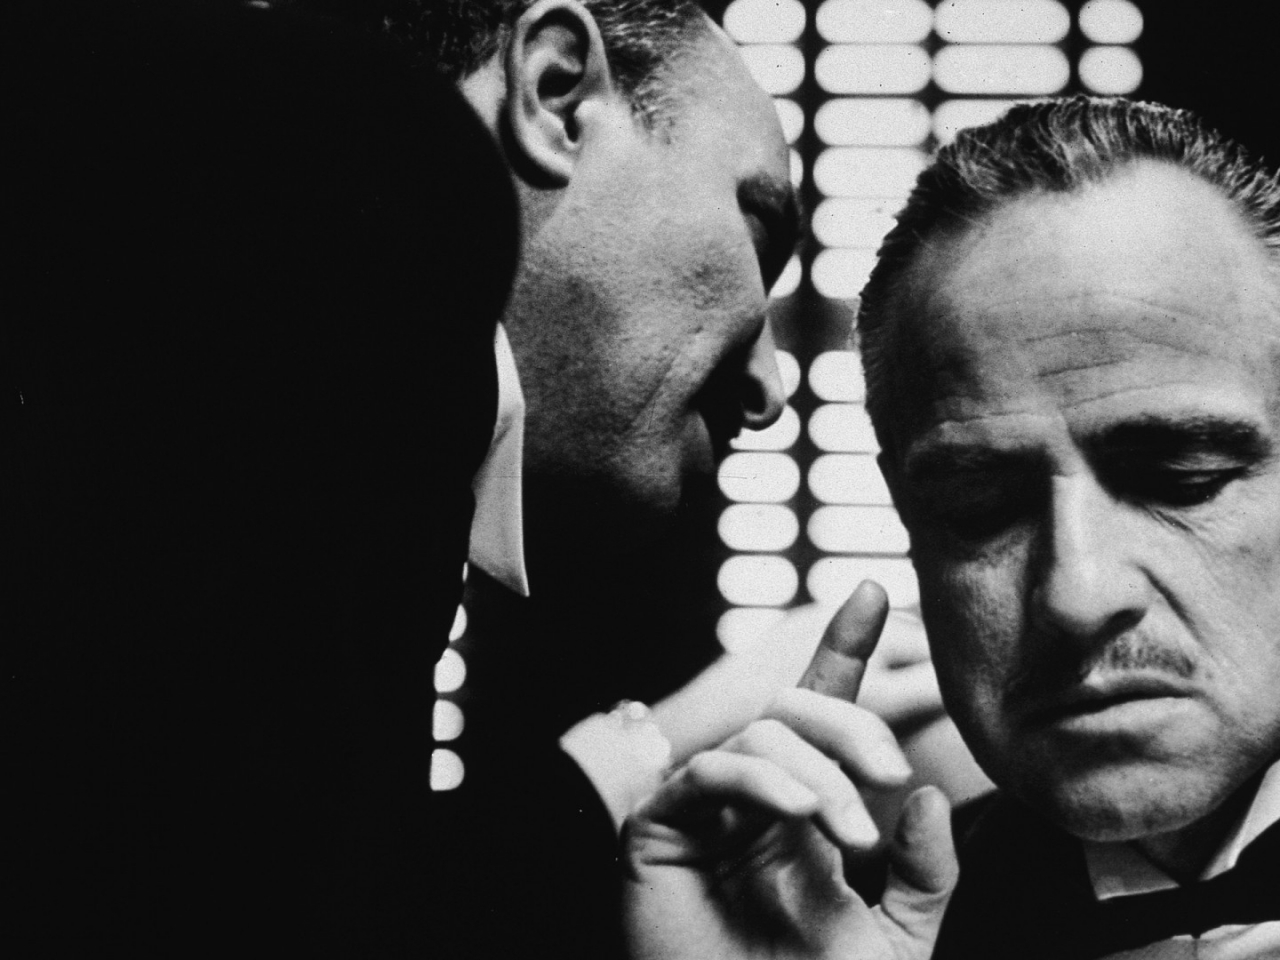 godfather monochrome vito corleone marlon brando 1920x1080 wallpaper 1280x960